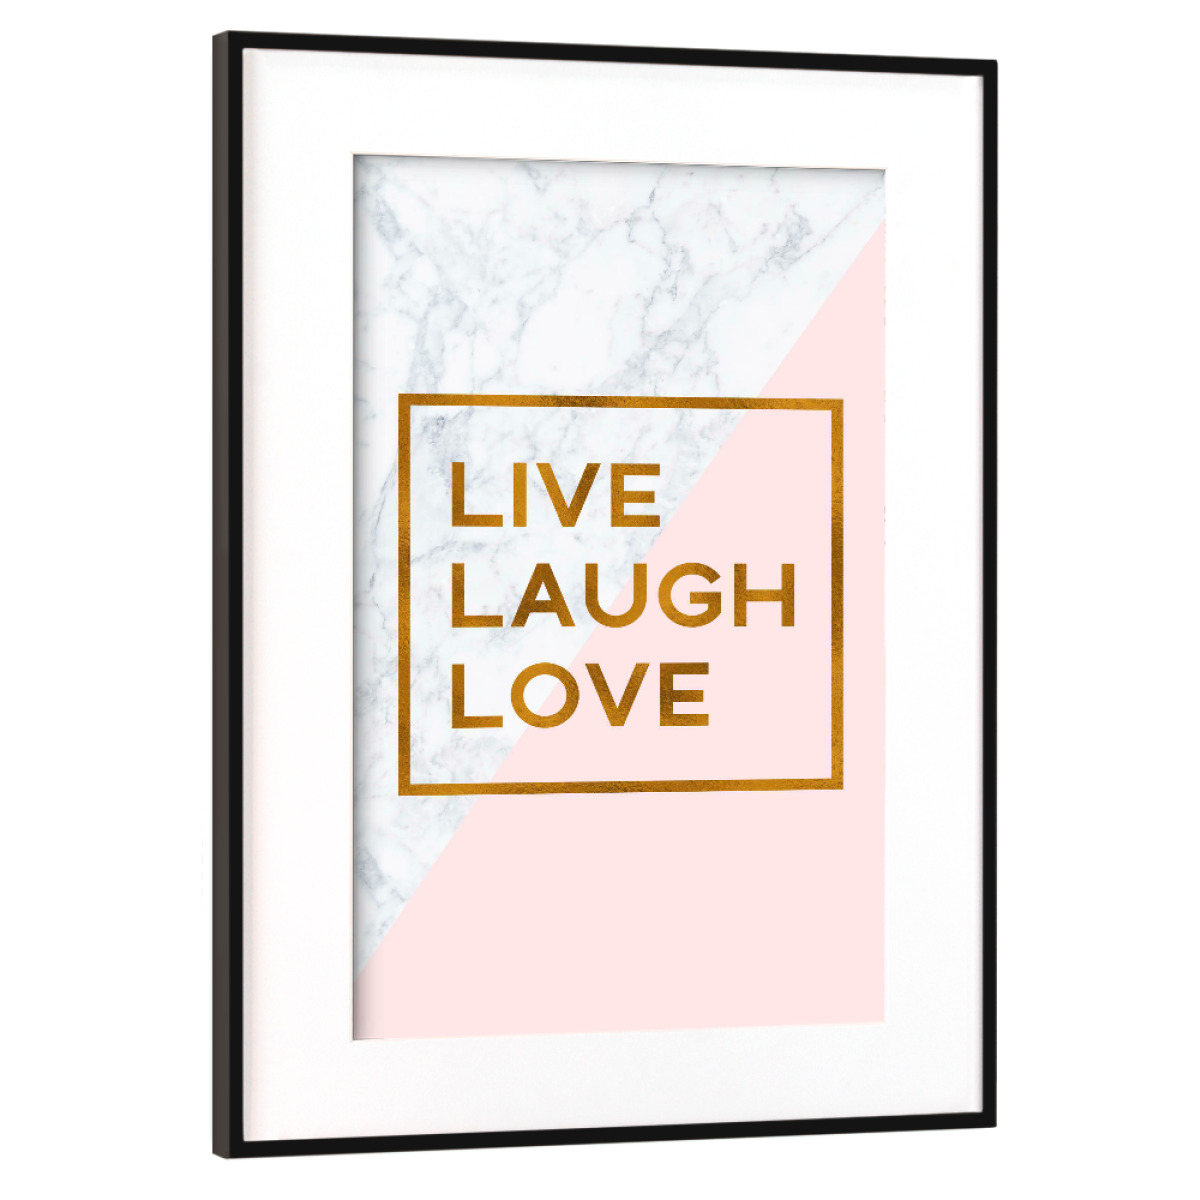 Purchase the Bronze Foil Live Laugh Love as a Frame at artboxONE